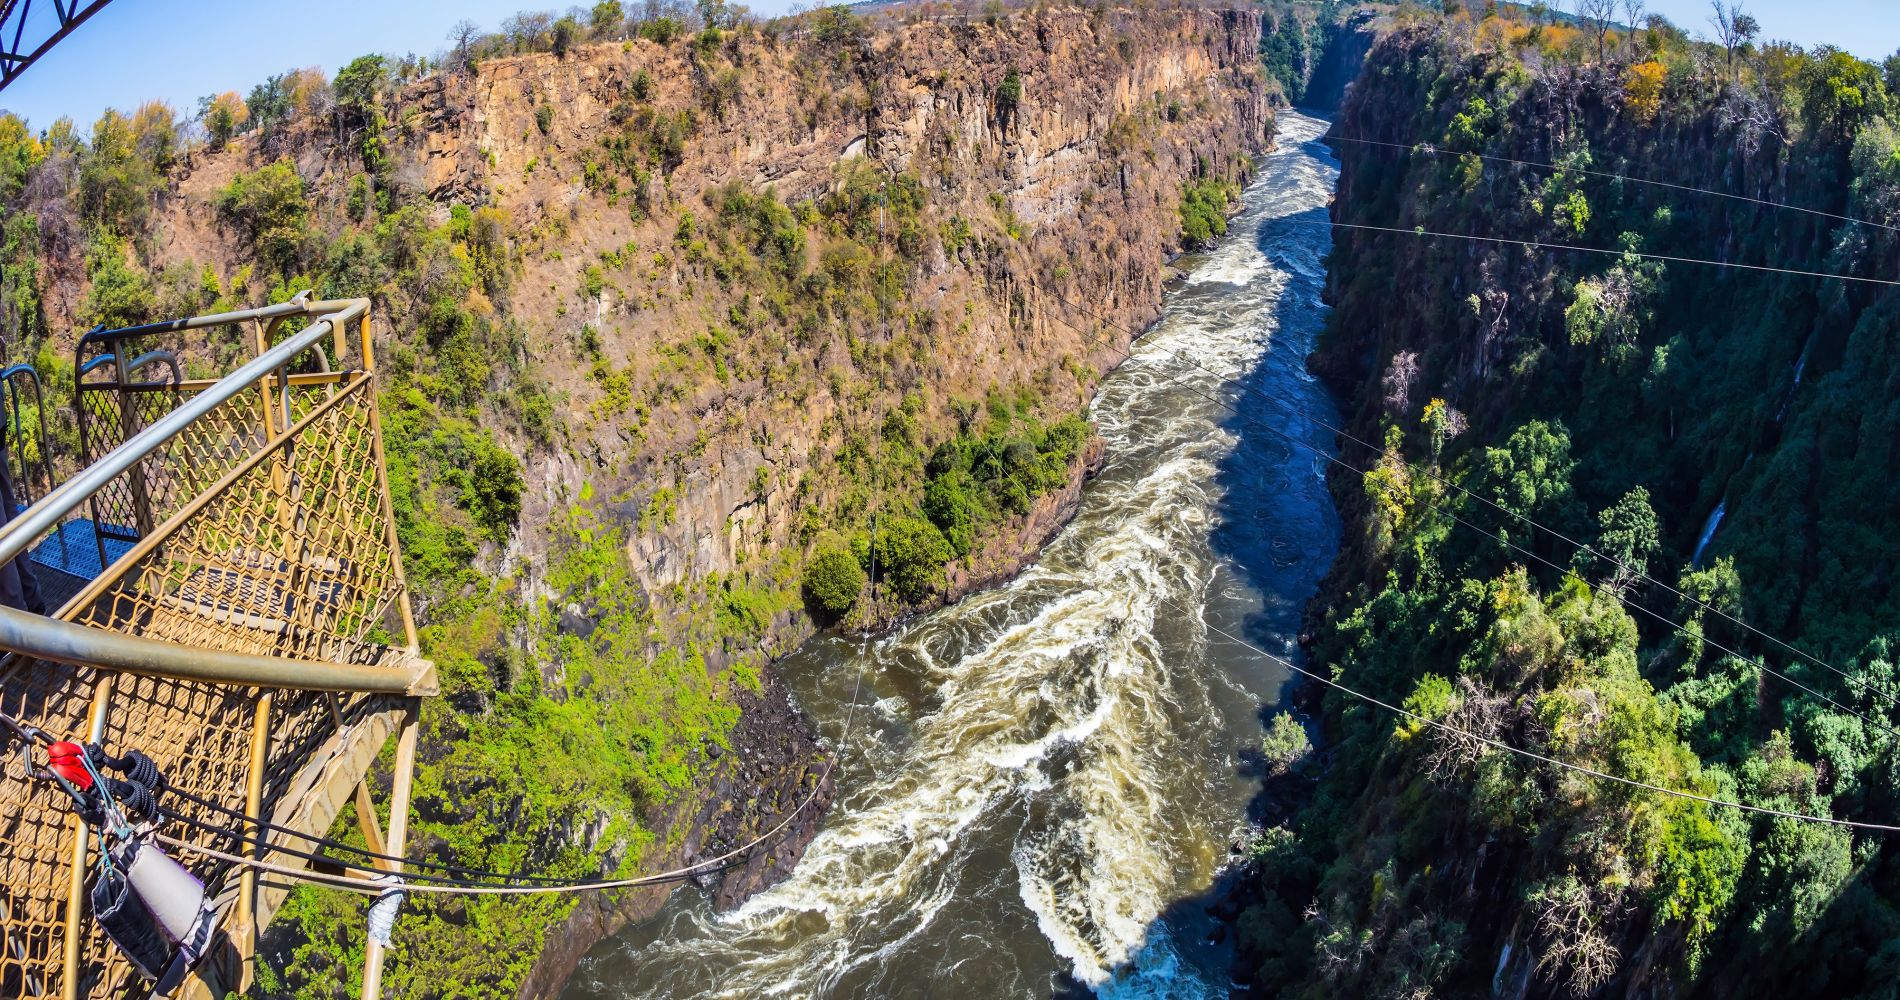 Breathtaking Gorge Swing in the Batoka Gorge below Victoria Falls